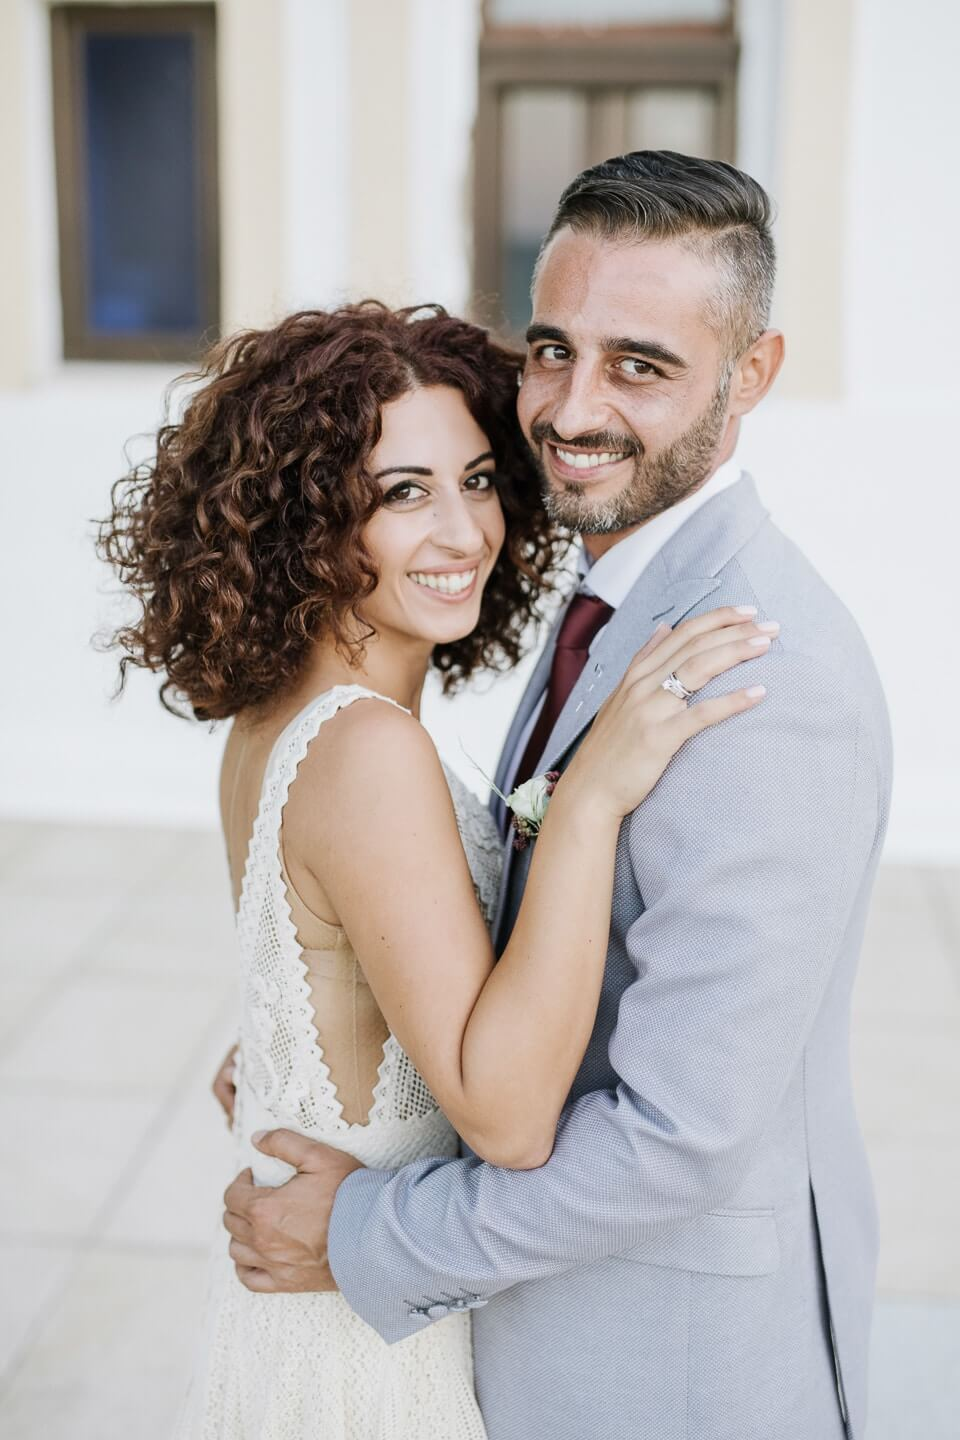 Katerina Irini Koronaki Professional Wedding Photographer Photography Crete Chania Greece